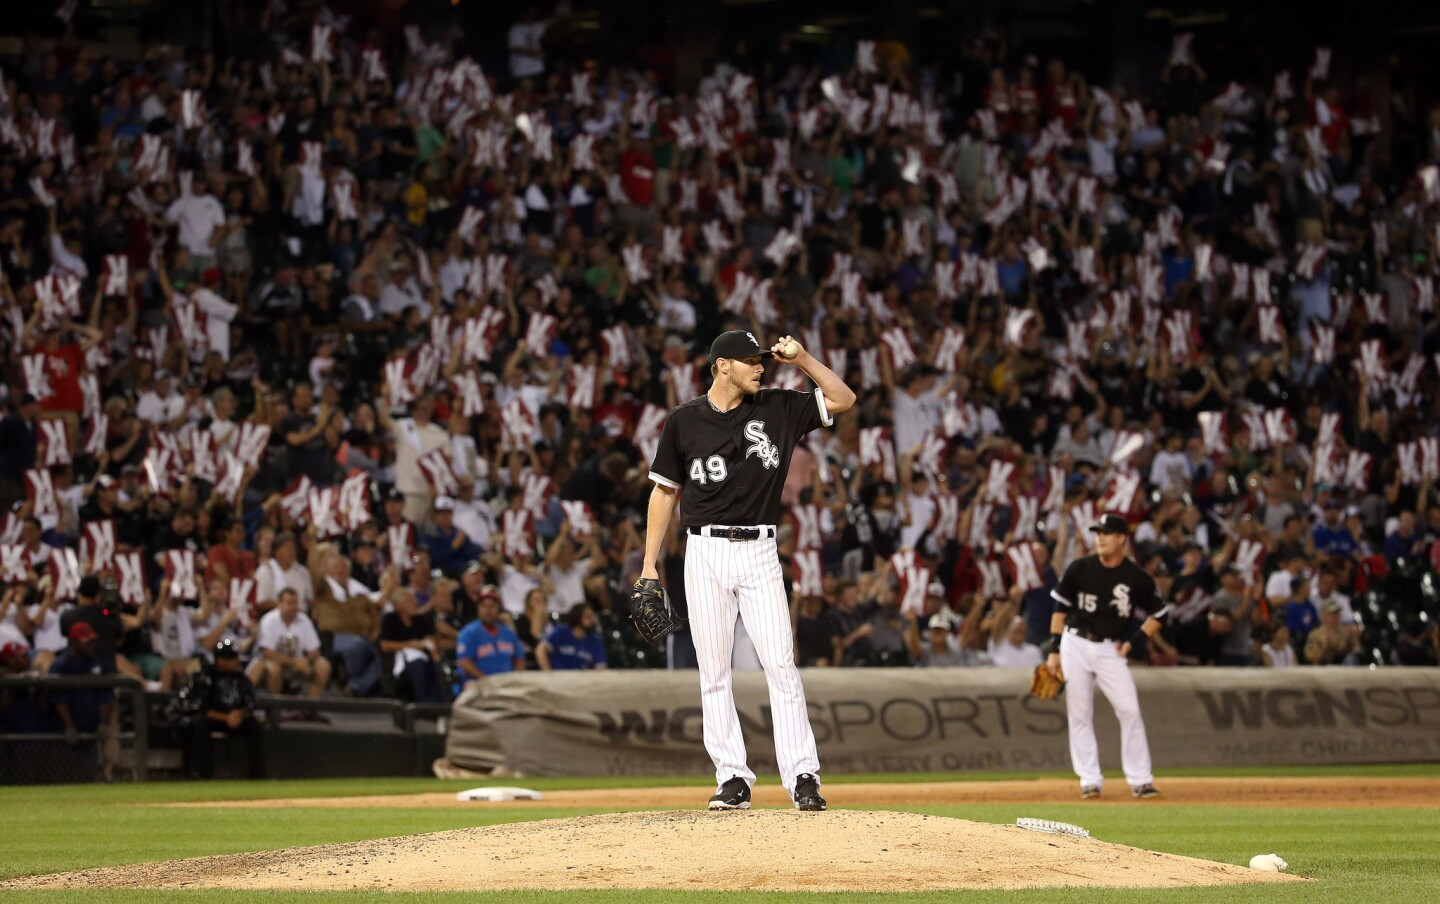 Chris Sale after a strikeout in the ninth inning.